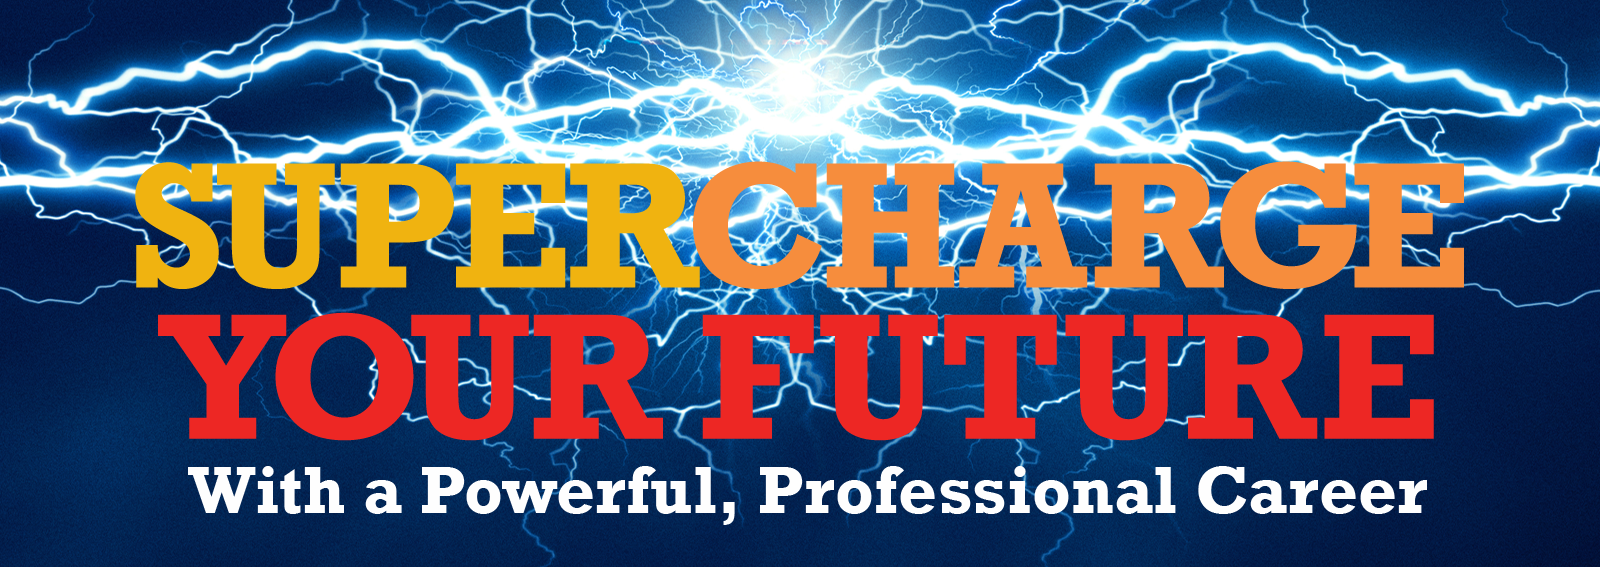 Supercharge your future, with a powerful, professional career.